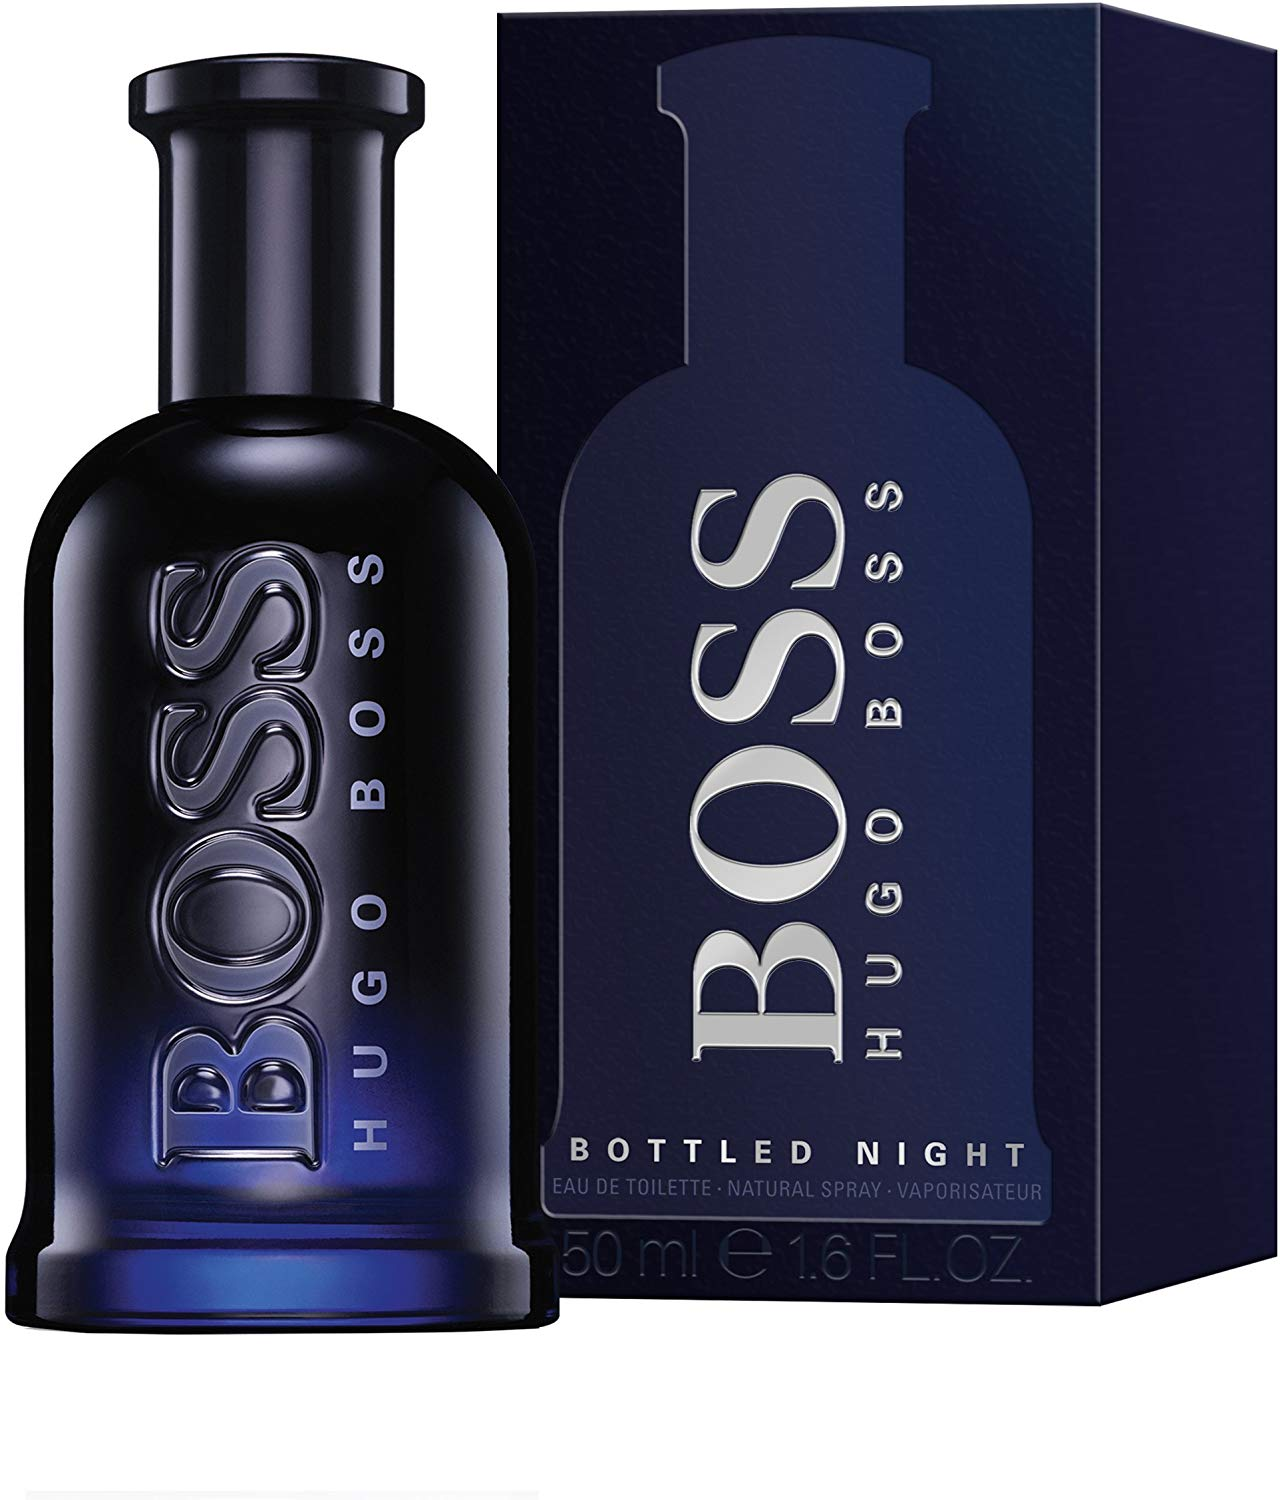 Hugo Boss Bottled Night Eau de Toilette for Men – 50 ml